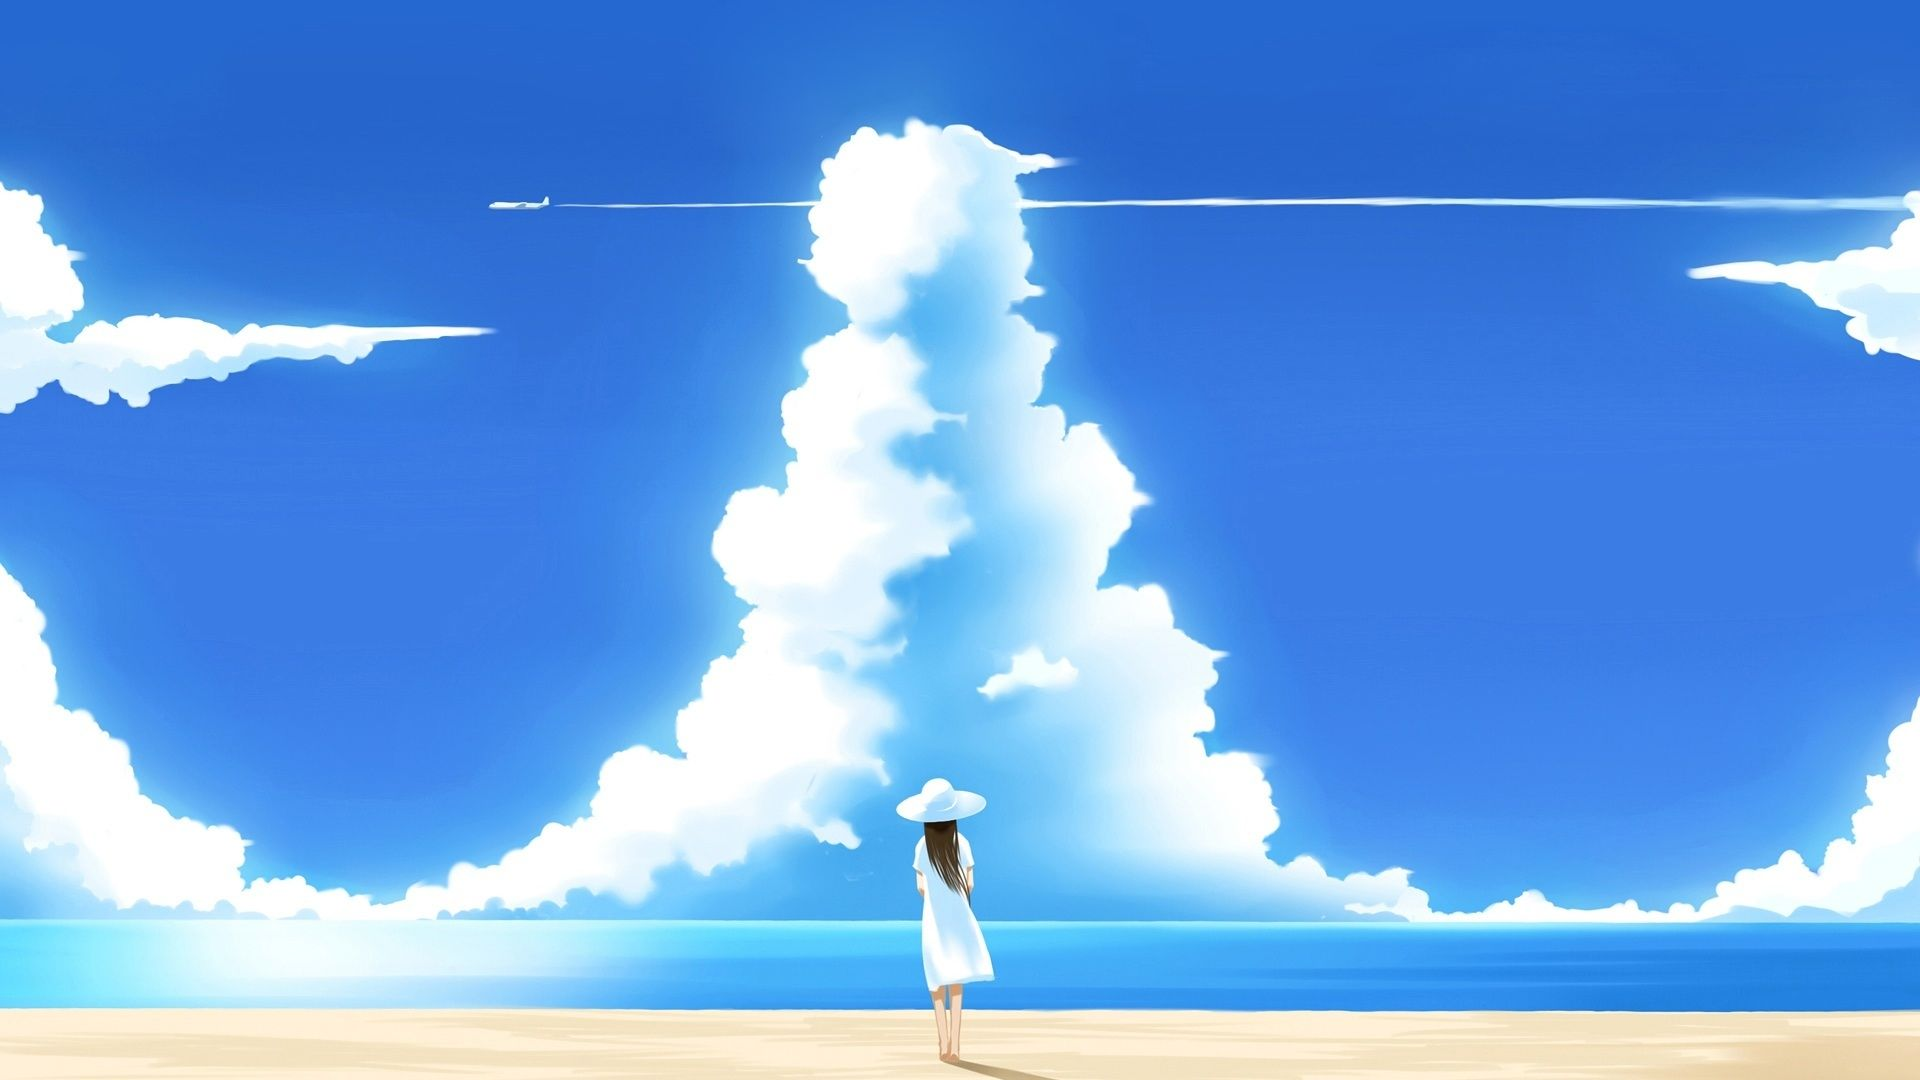 Unique Anime Beach Wallpaper Anime Scenery Anime Scenery Wallpaper Scenery Wallpaper